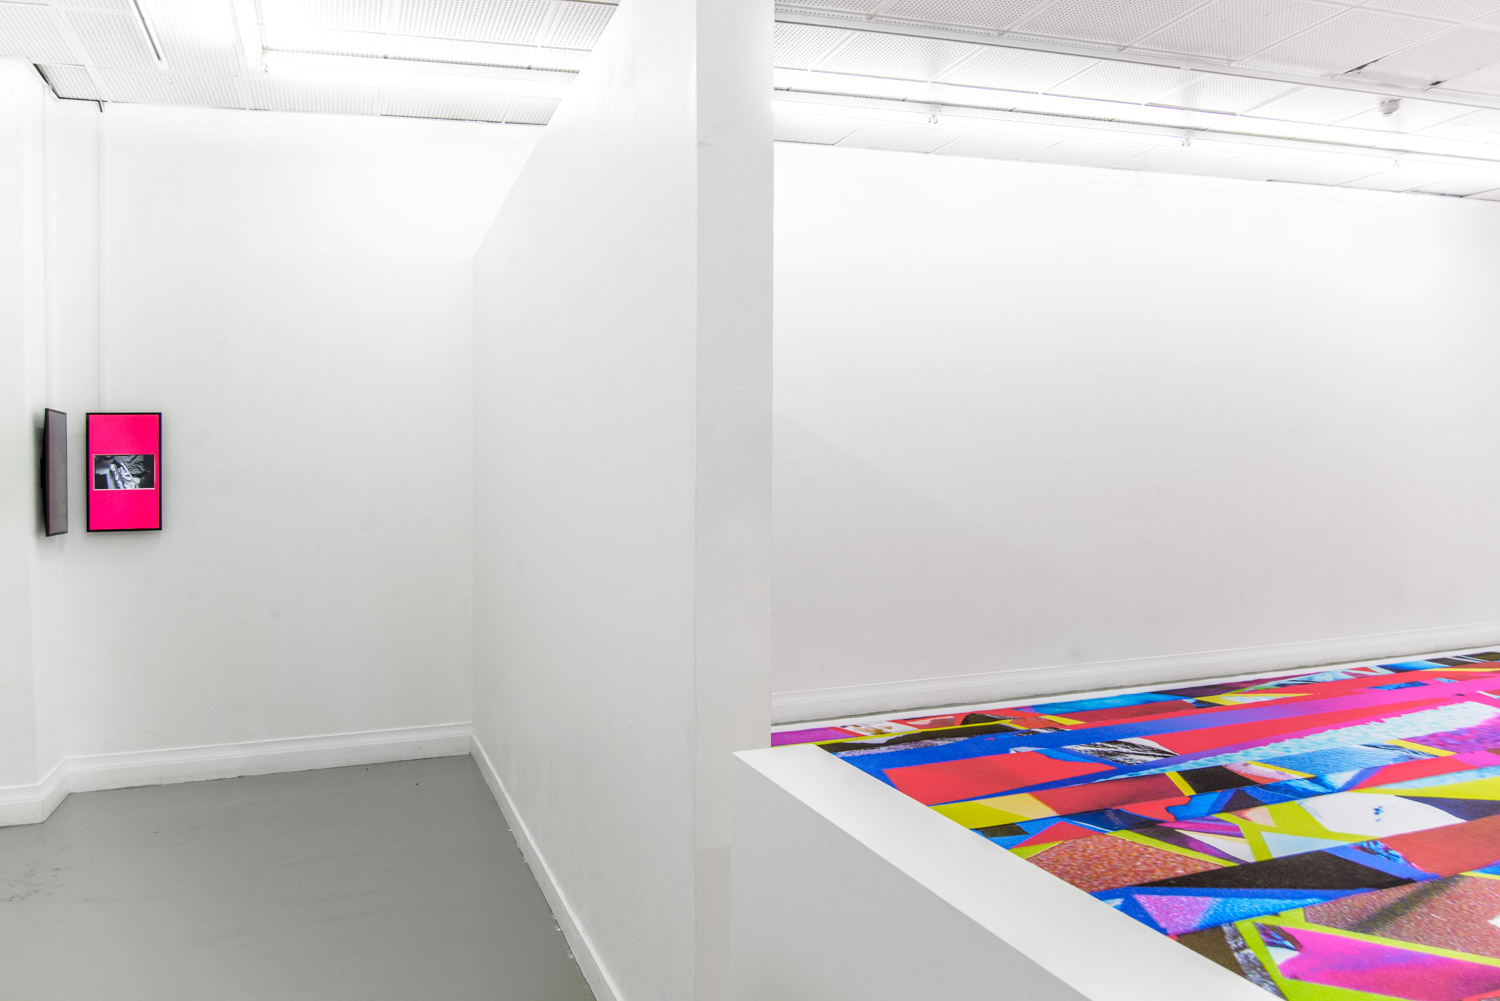 contemporary colorful carpet and two screens as an art installation by Stefano Conti in a white gallery